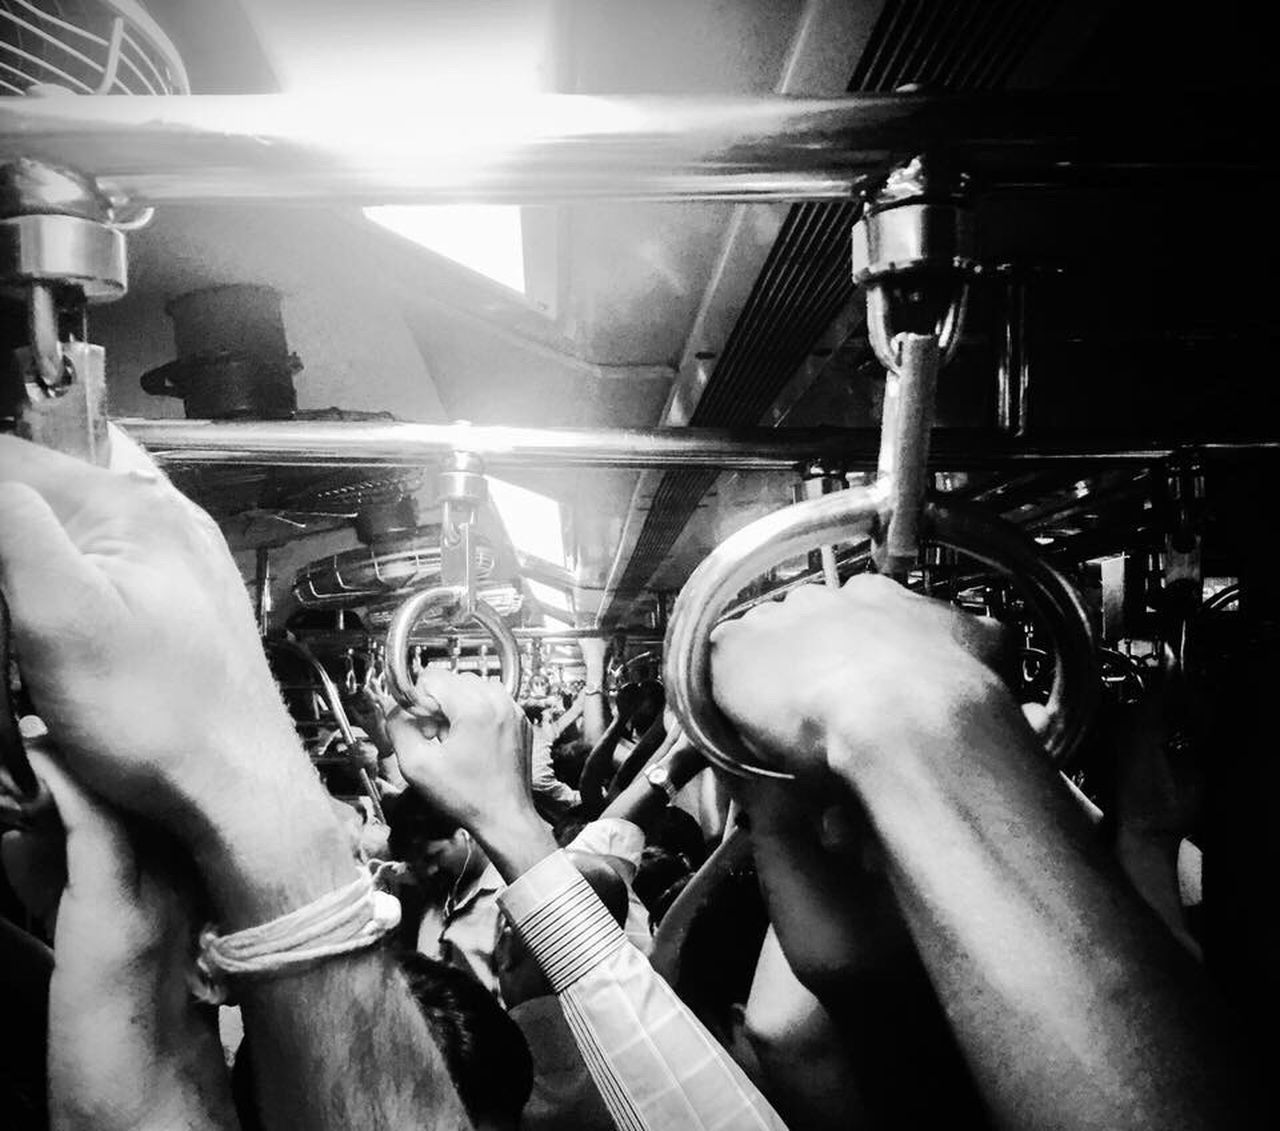 People Hands Together Traveling Train The Great Outdoors - 2017 EyeEm Awards The Human Condition Safety Grip HoldOn Blackandwhite Crowded Traveling Together Back Home